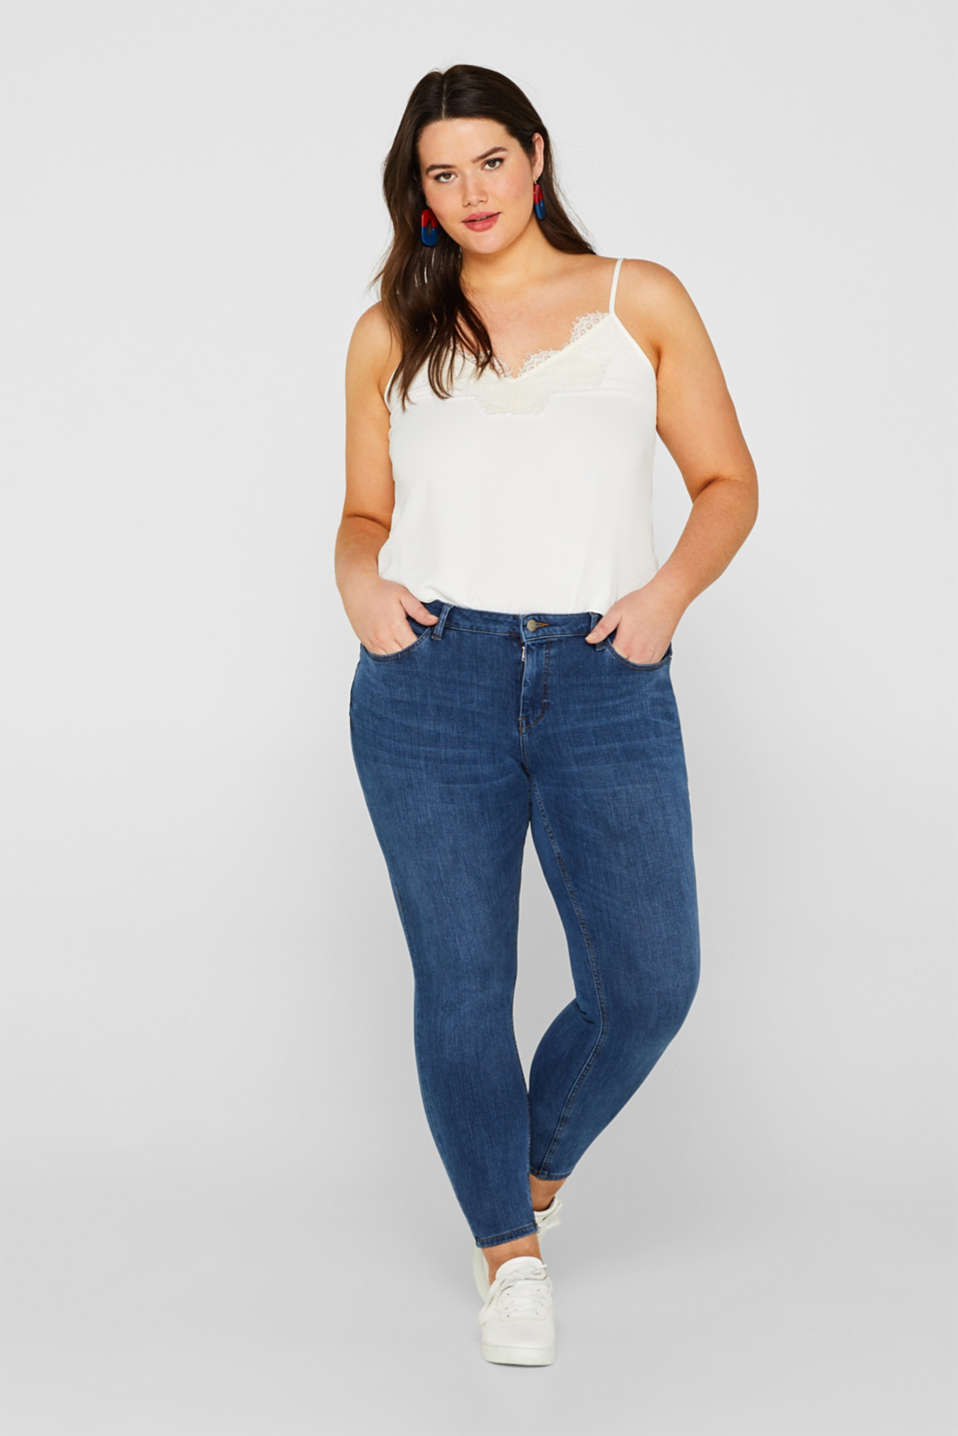 ESPRIT CURVES super stretch jeans with lyocell